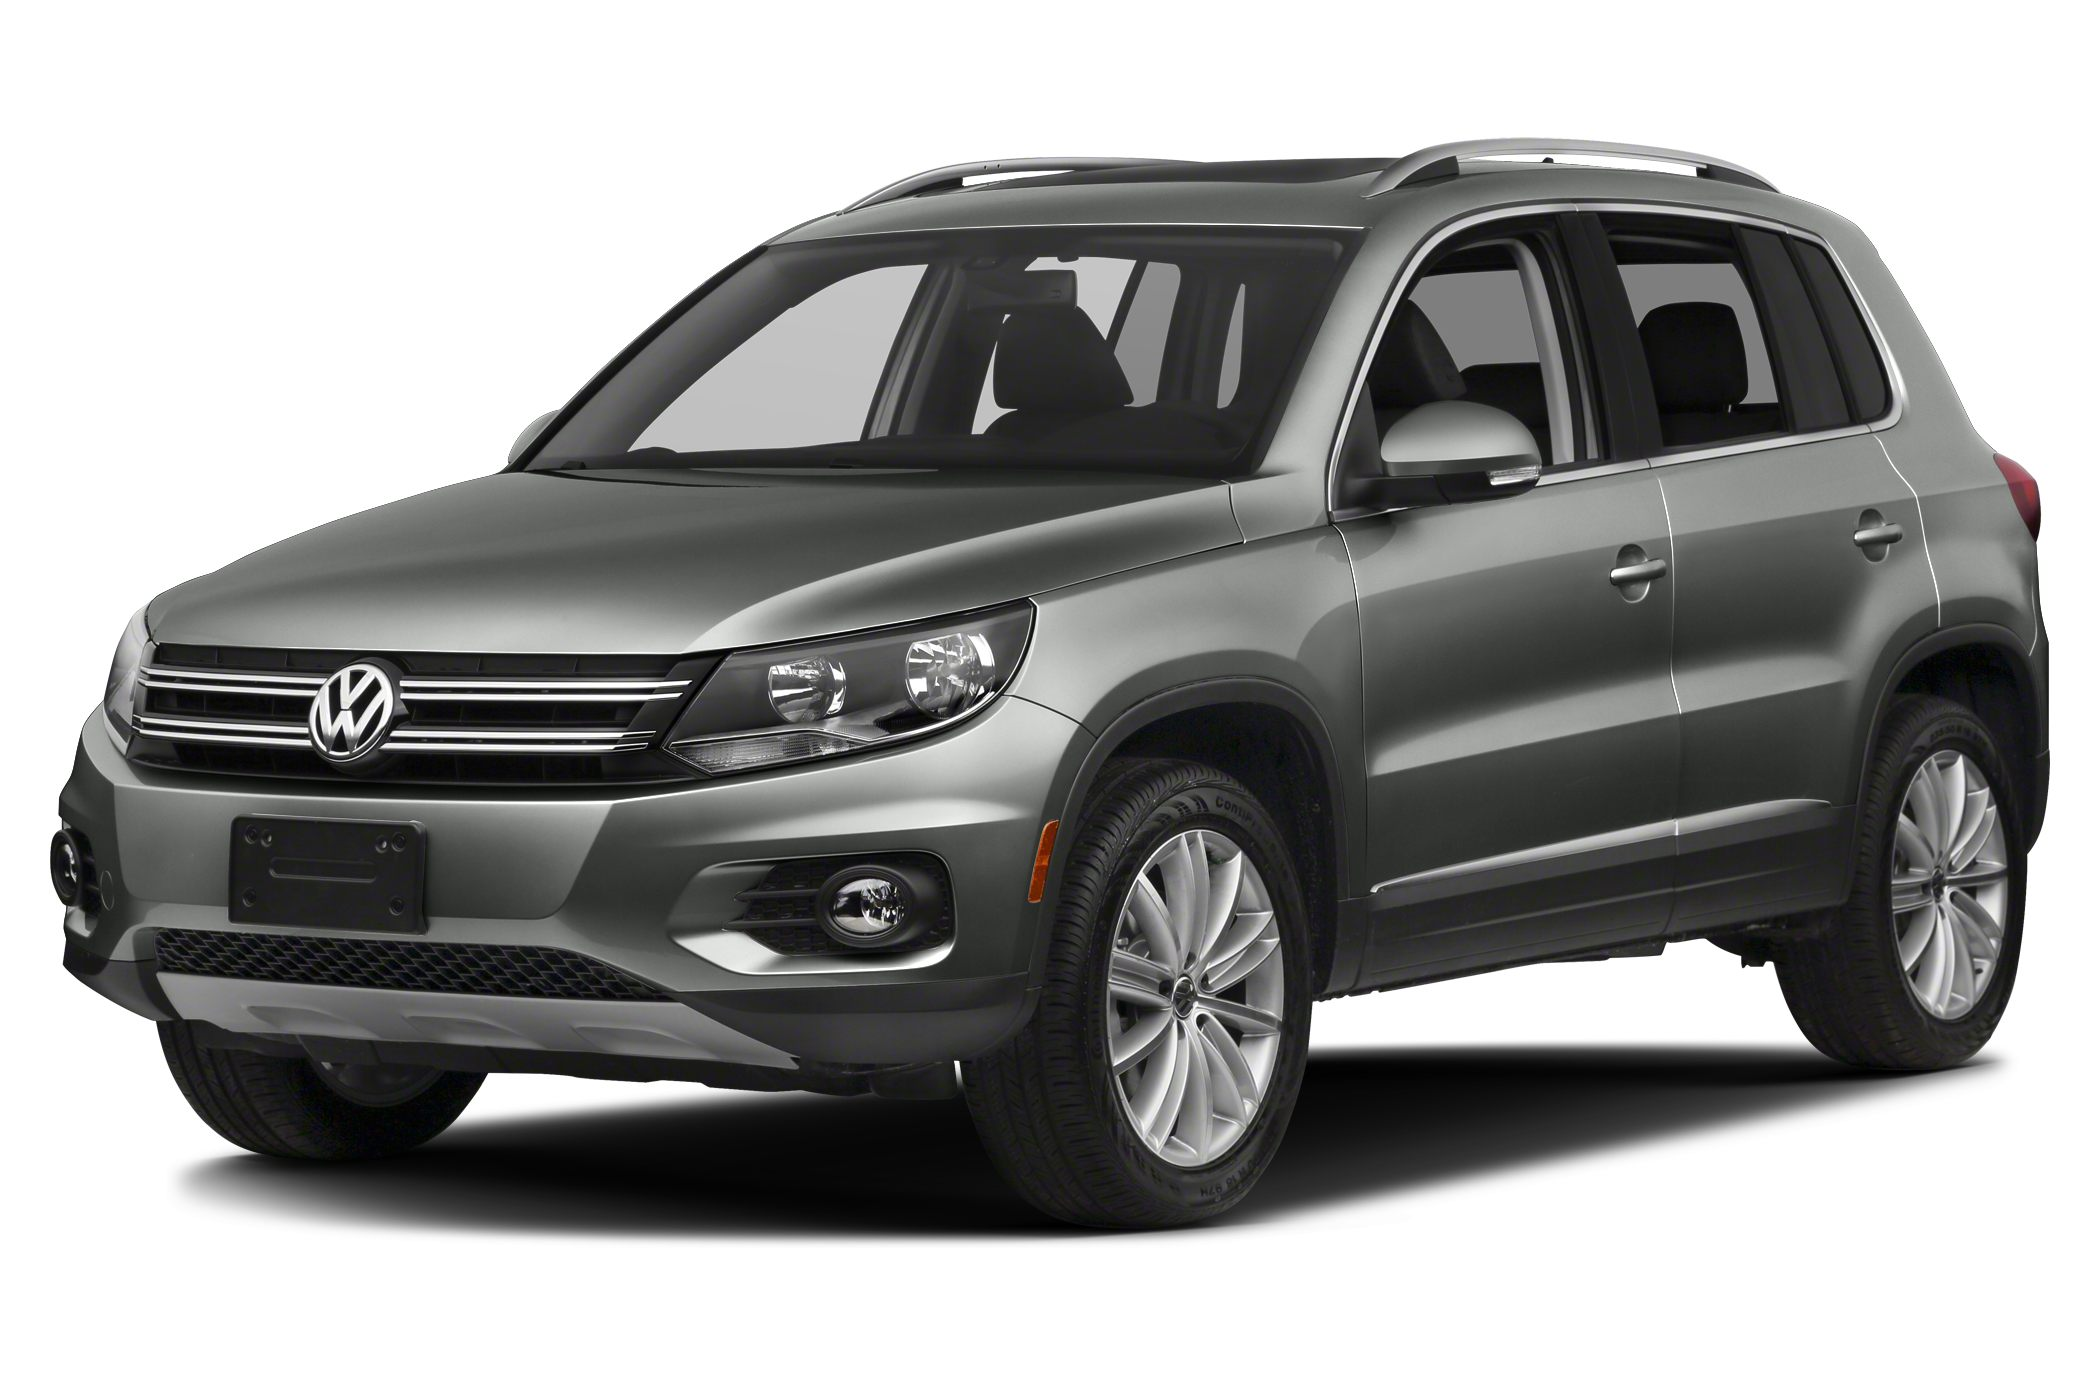 2012 Volkswagen Tiguan SE SUV for sale in Tallahassee for $22,404 with 20,722 miles.